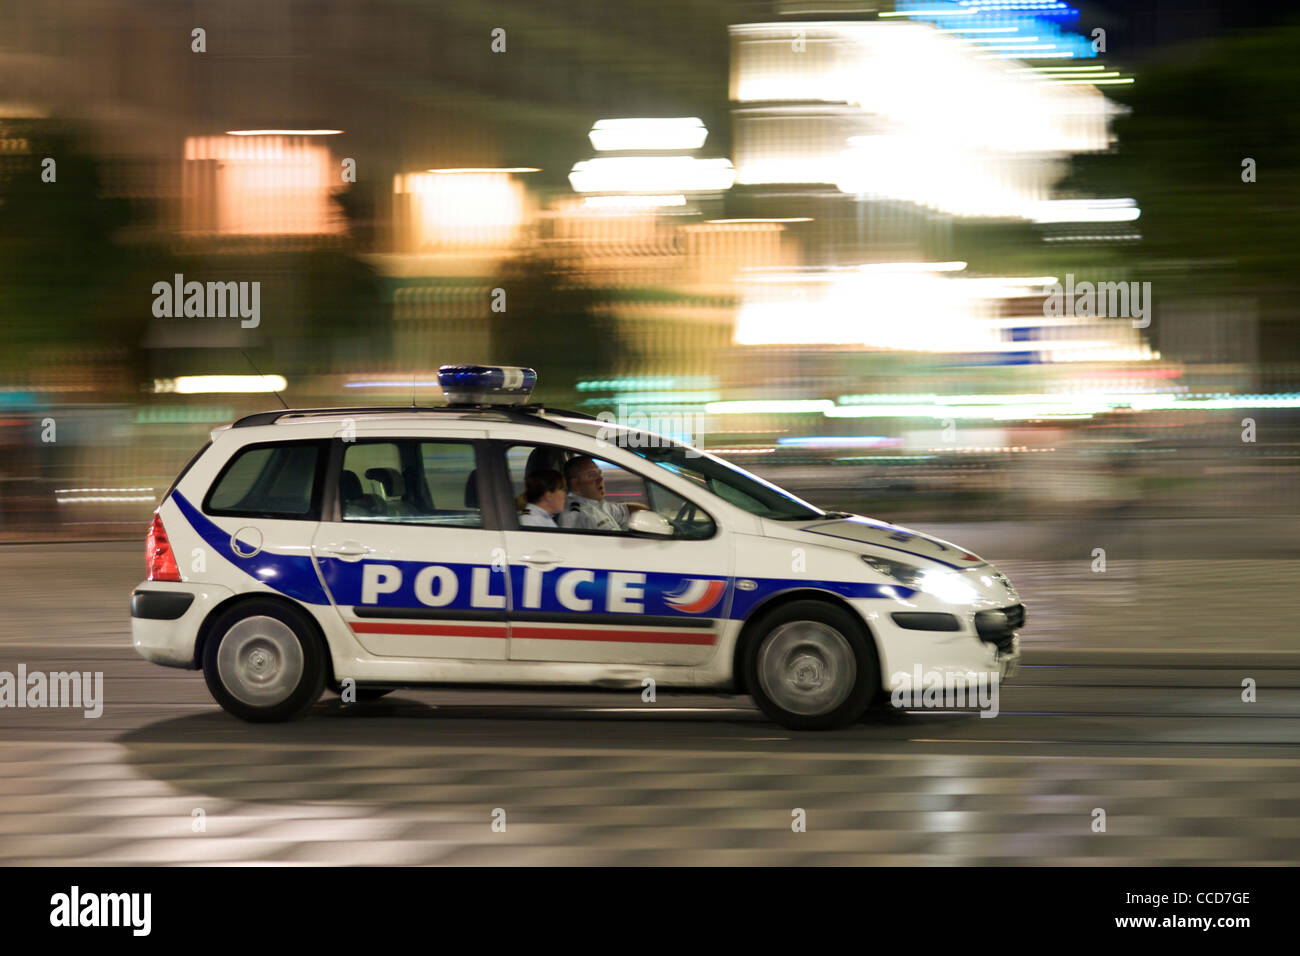 gendarme car stock photos gendarme car stock images alamy. Black Bedroom Furniture Sets. Home Design Ideas